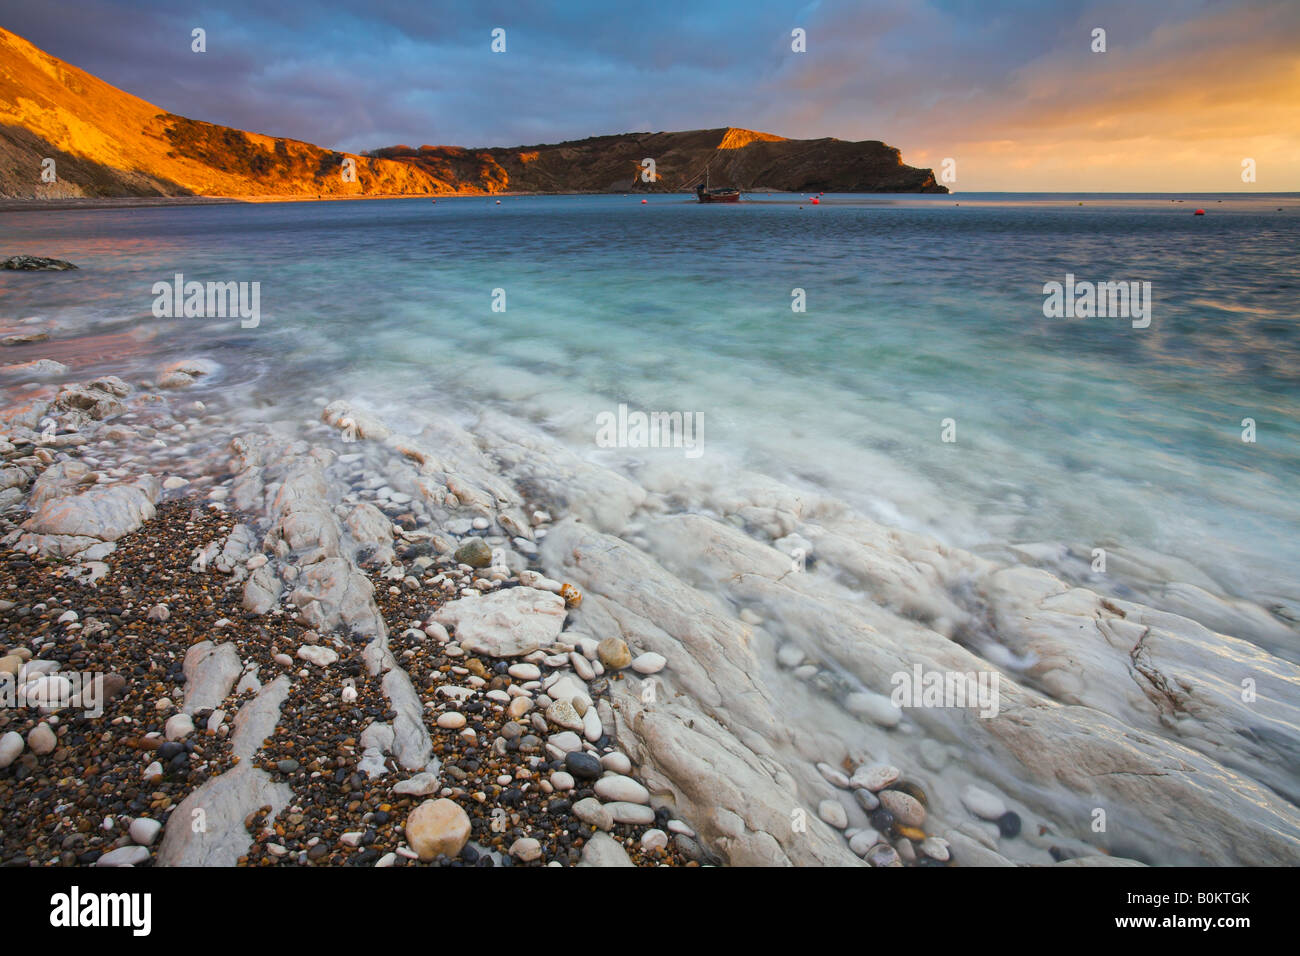 Sunlight glows on the cliffs at Lulworth Cove in Dorset England - Stock Image